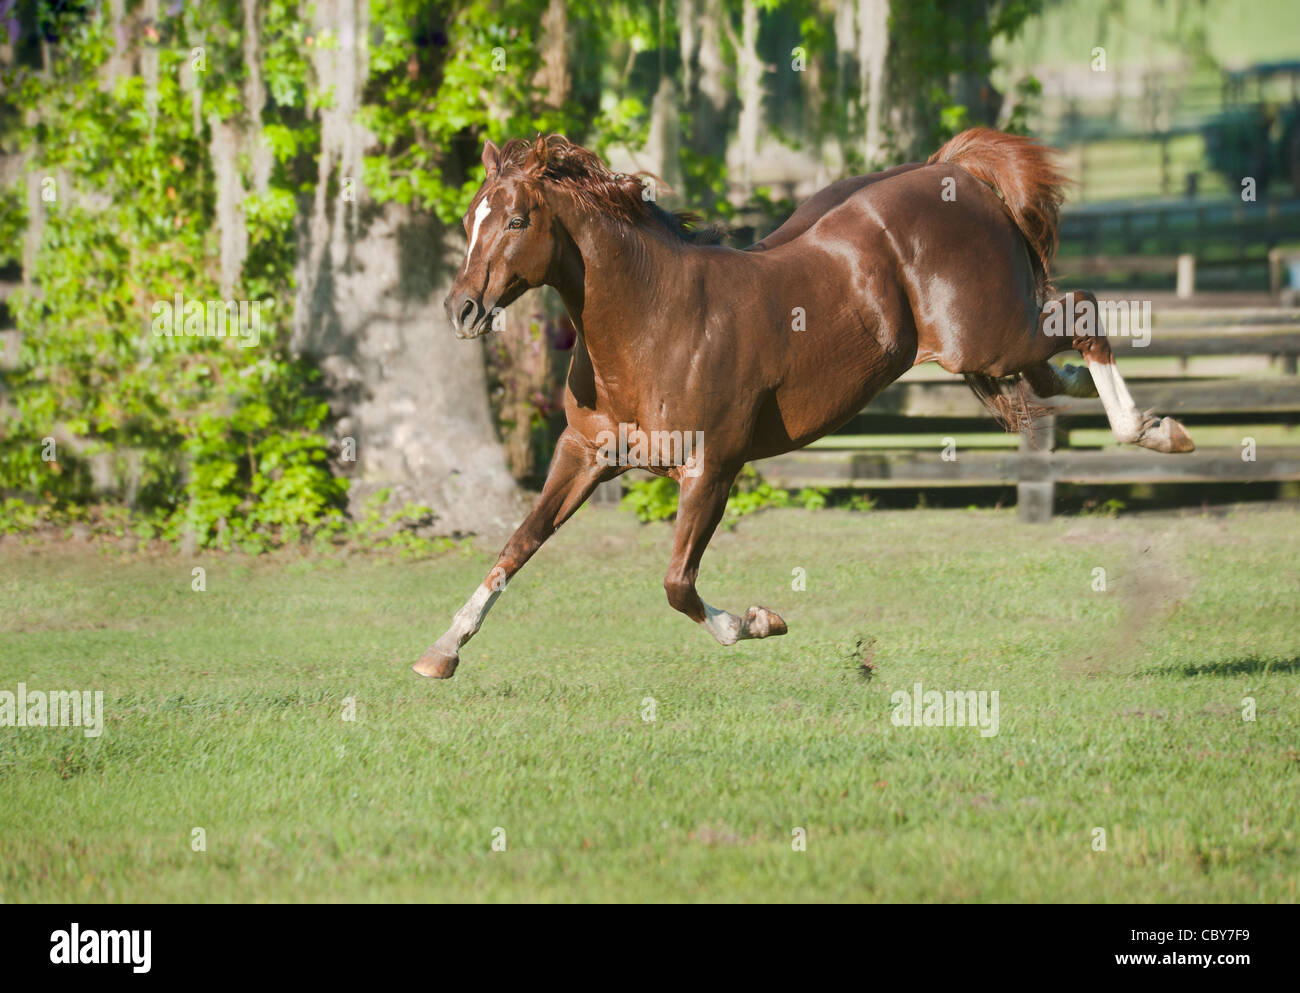 Thoroughbred horse stallion bucking in play - Stock Image